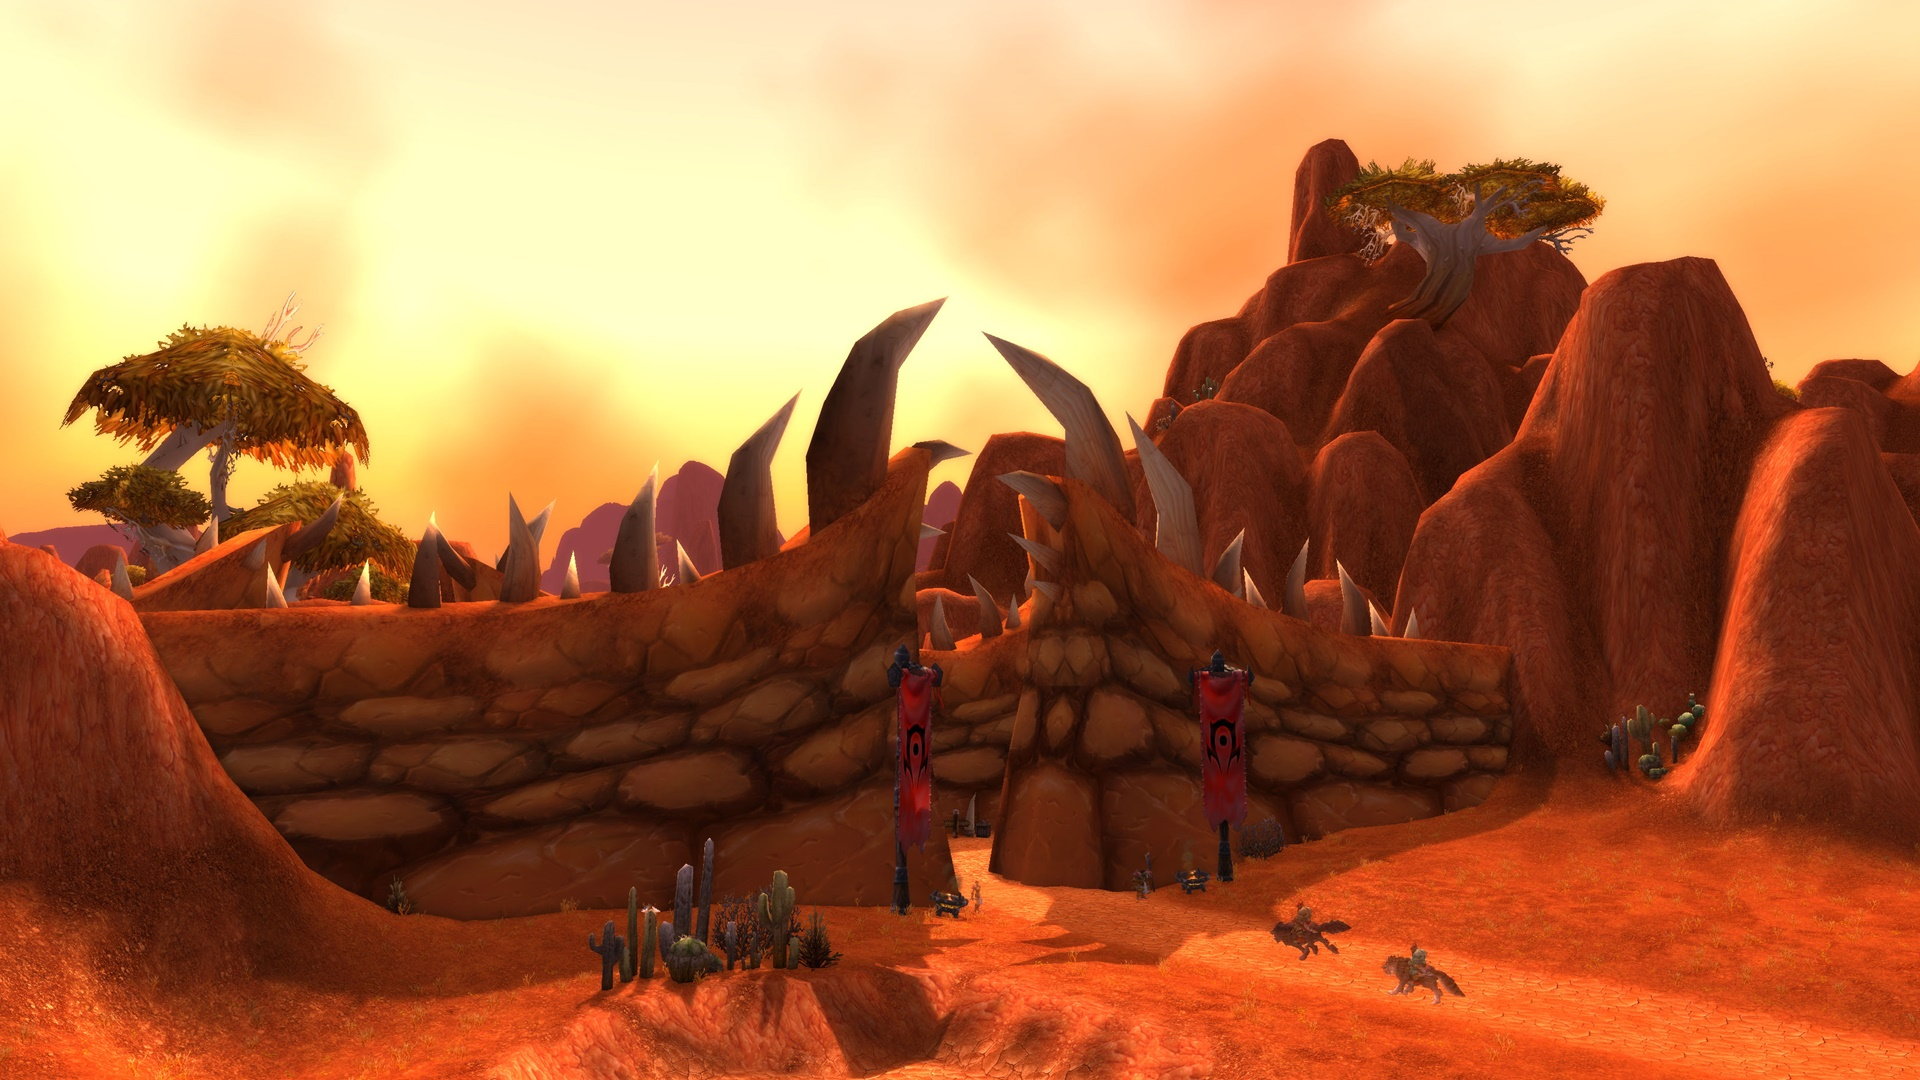 Classic WoW leveling guide: fast ways to level up in vanilla World of Warcraft